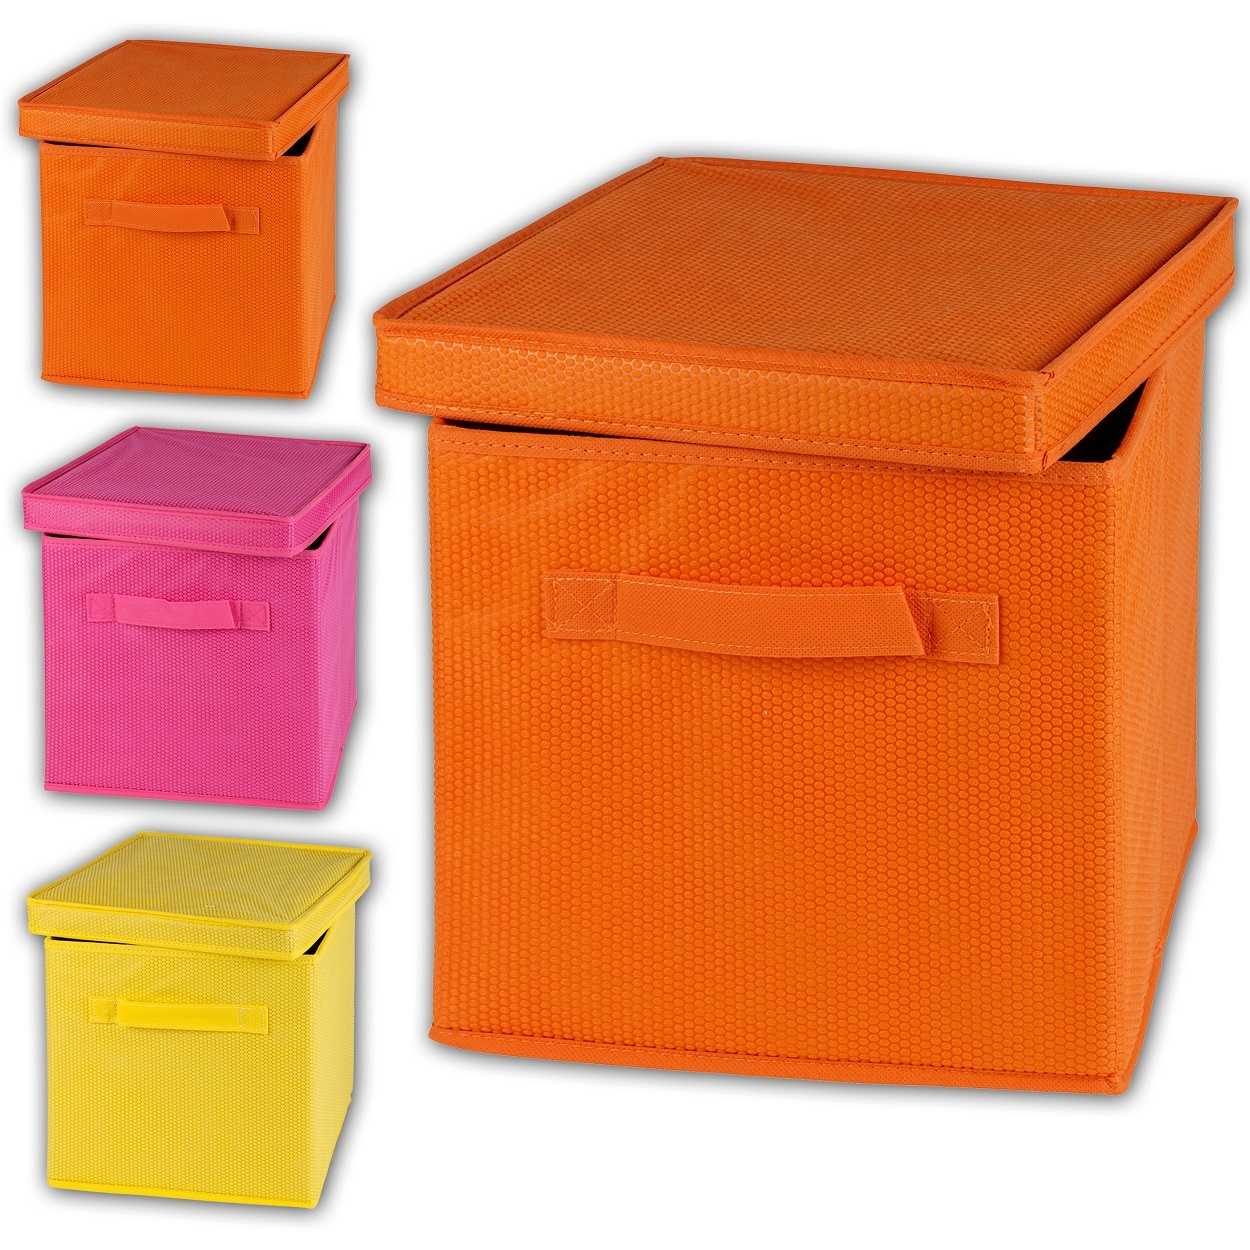 foldable storage box cube fabric organizer container collapsible unit home decor ebay. Black Bedroom Furniture Sets. Home Design Ideas